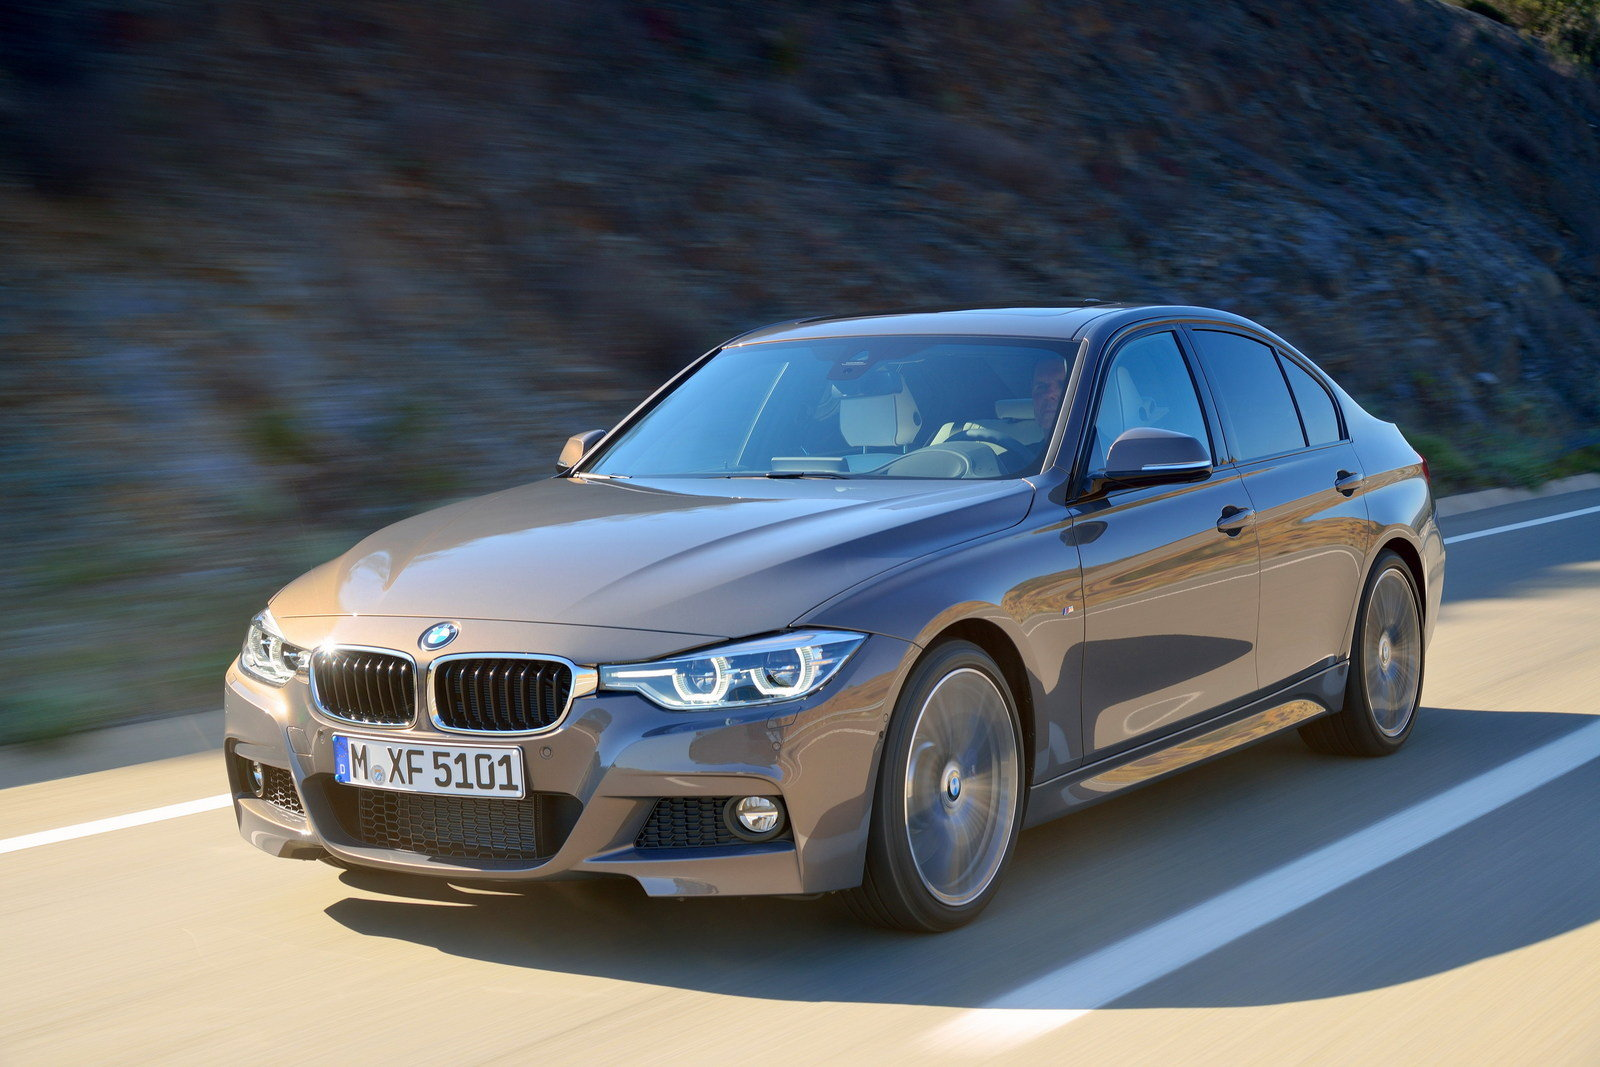 Brilliant 2016 BMW 3 Series  Picture 629342  Car Review  Top Speed